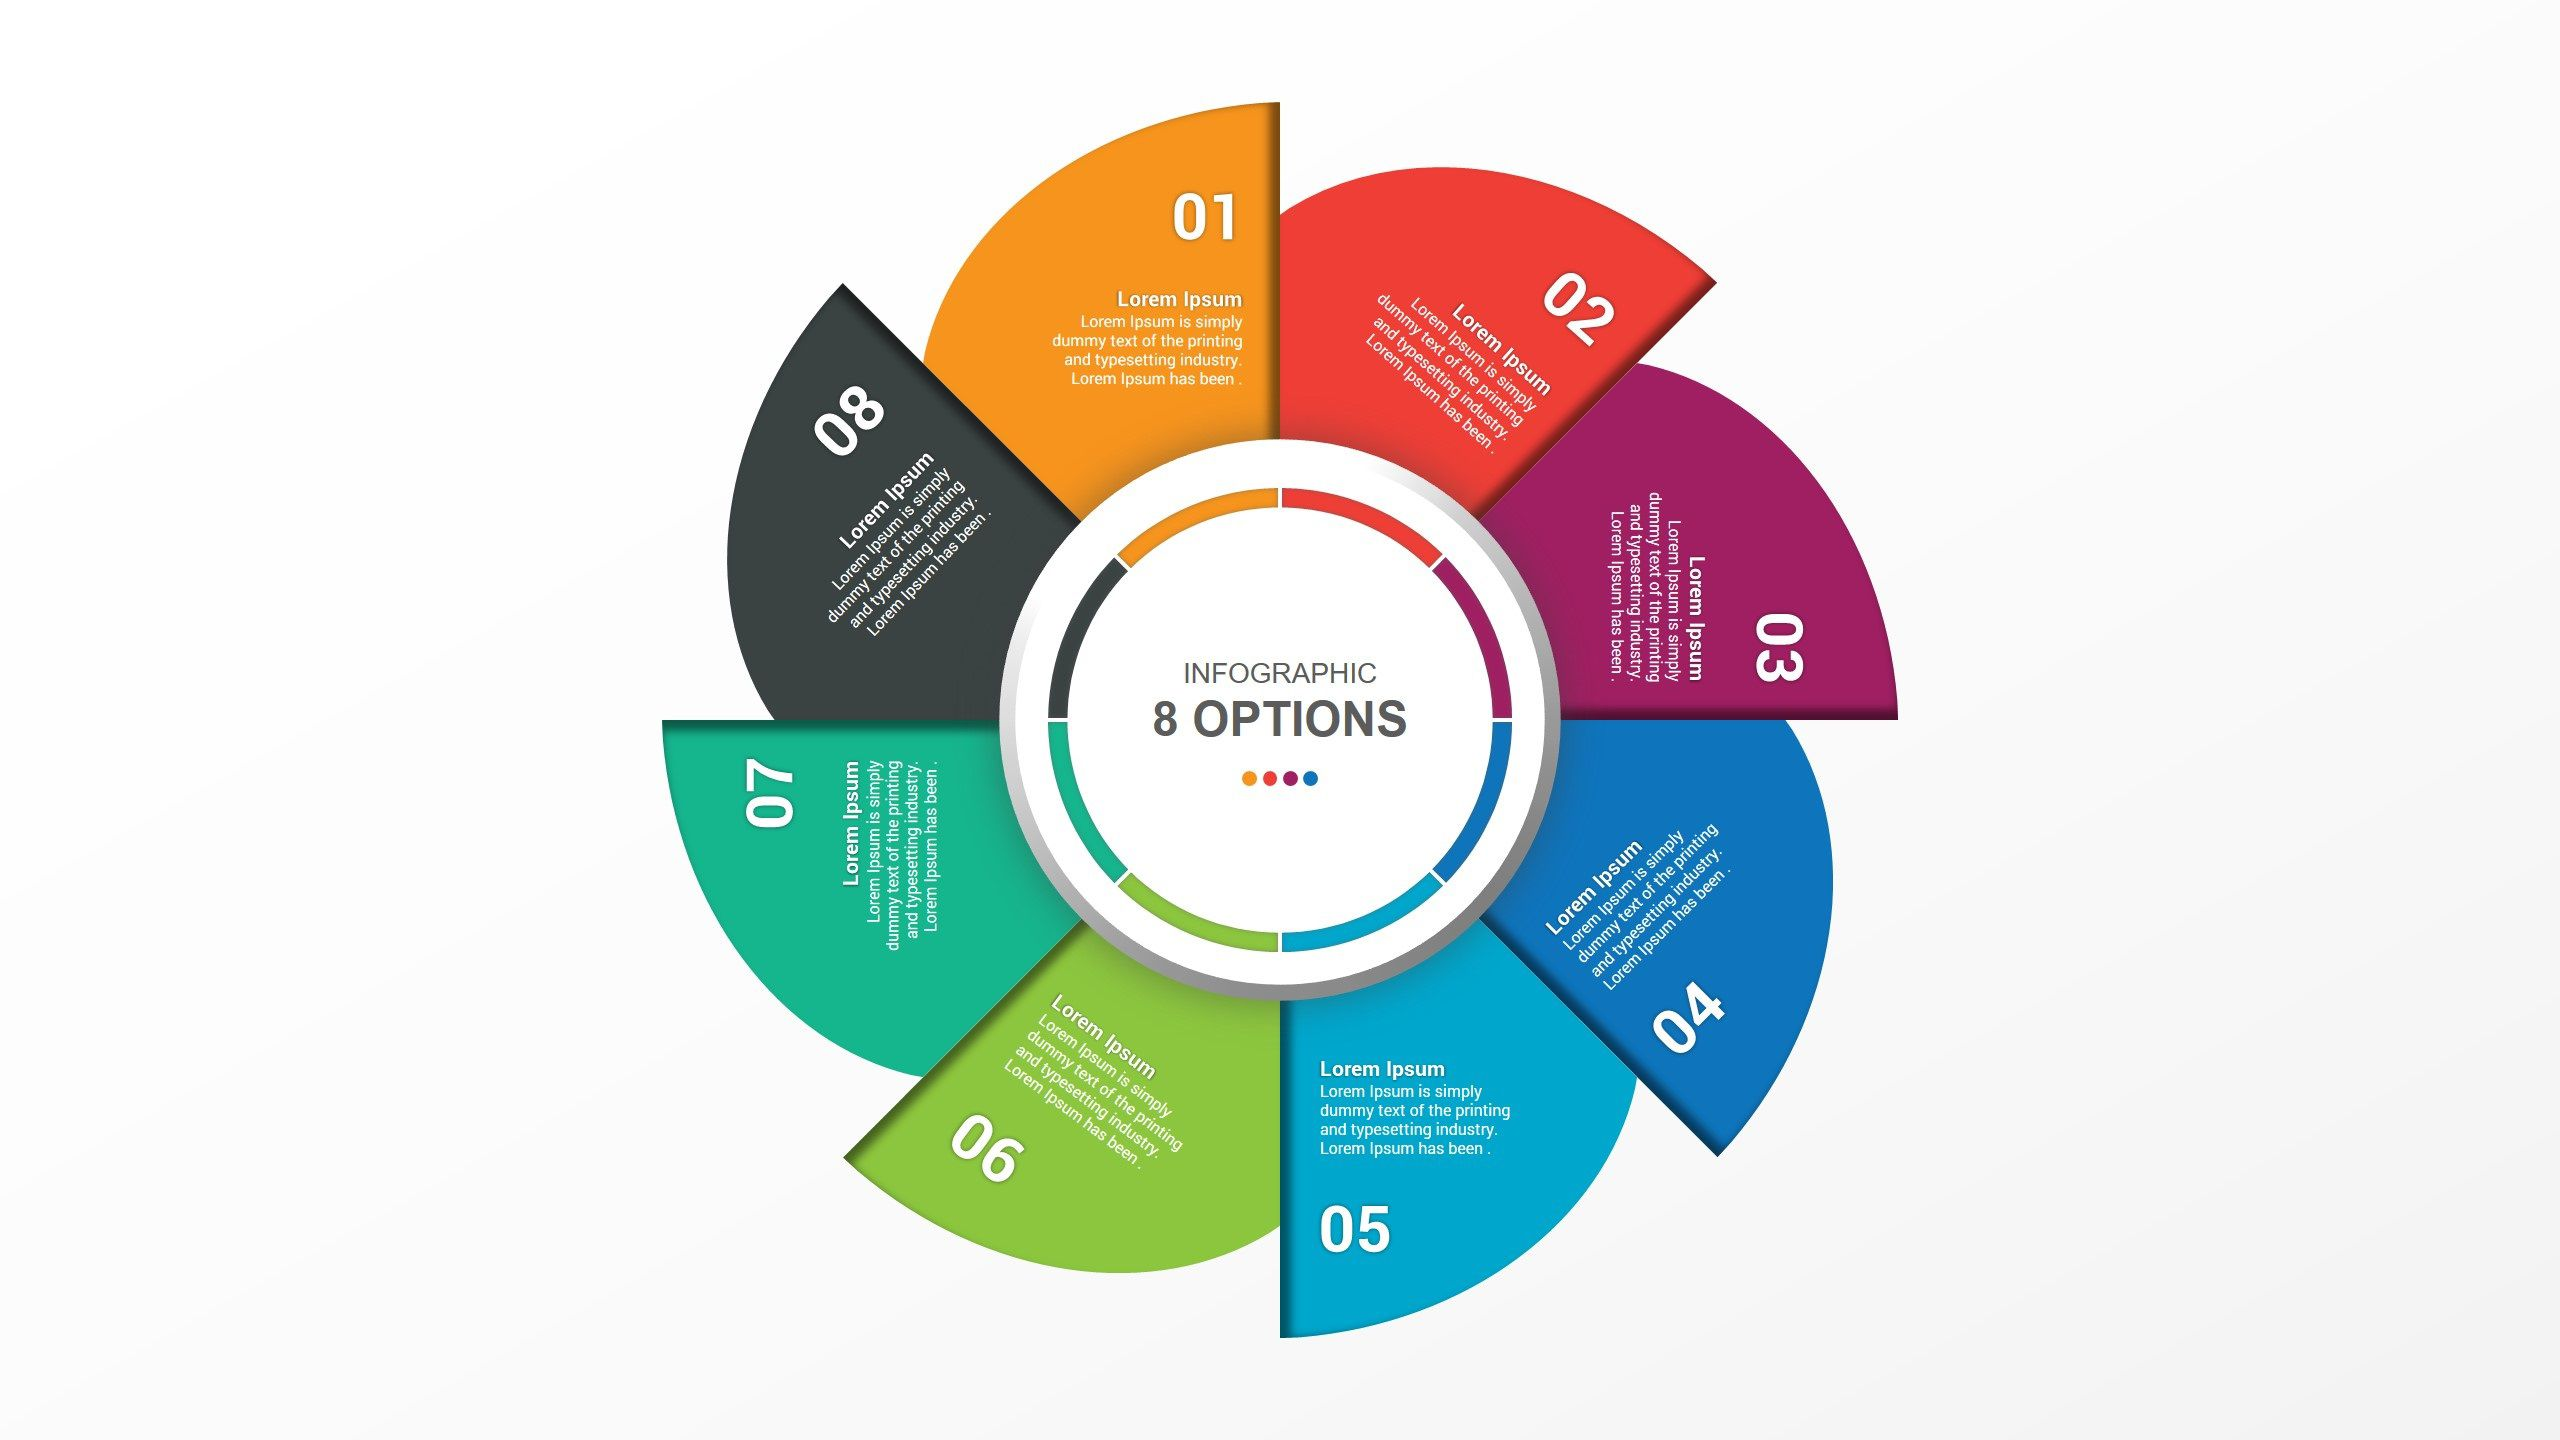 004 Astounding Google Power Point Template Highest Clarity  Free Ppt Powerpoint DownloadFull